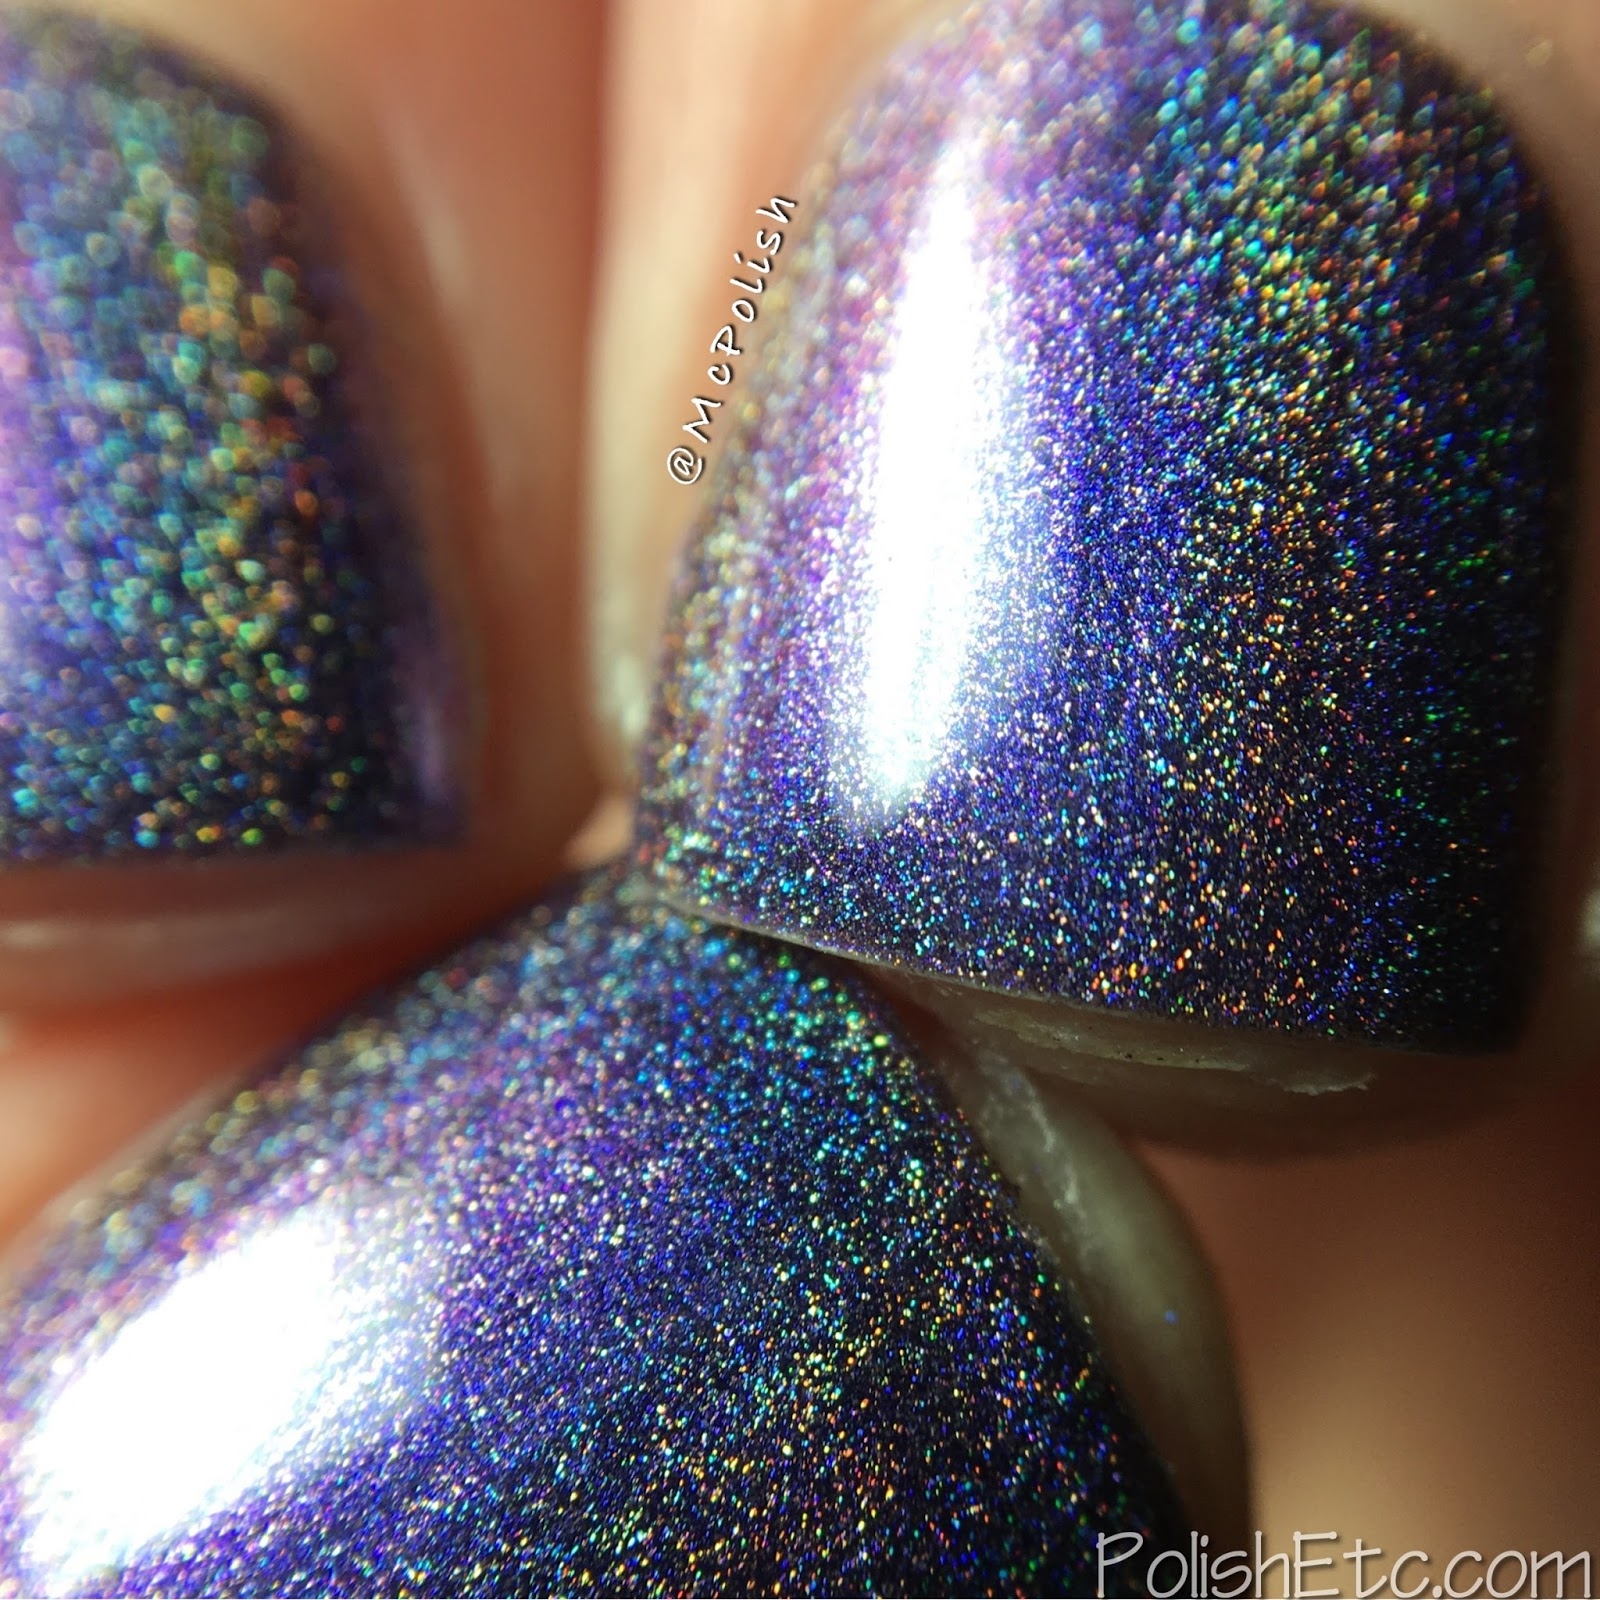 Great Lakes Lacquer - Polishing Poetic Collection - McPolish - Ease One Life the Aching